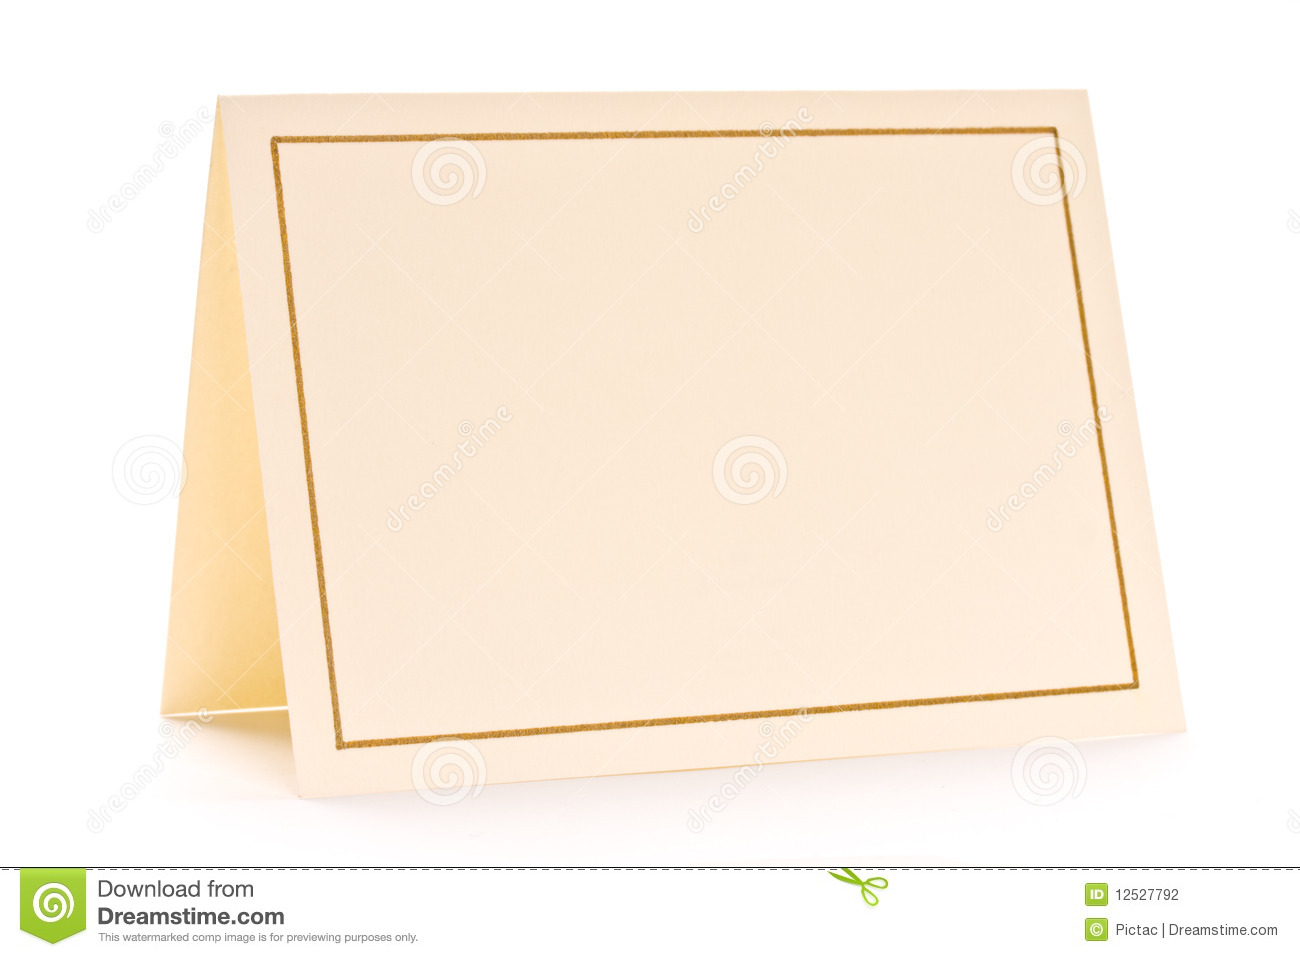 Blank greeting card stock photo. Image of blank, message ...